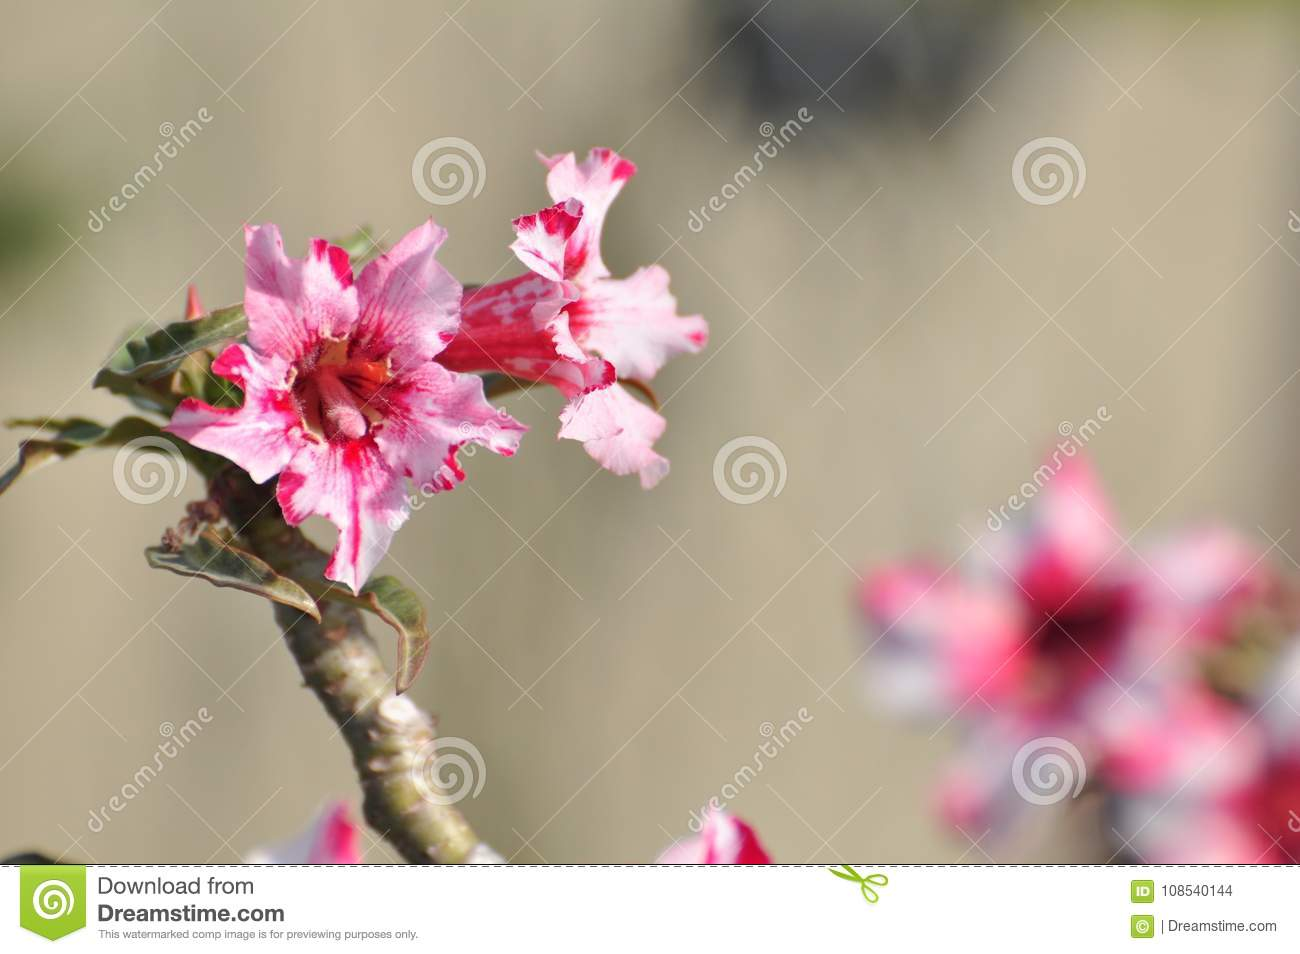 Pink Desert Rose Flowerautiful Pink Flowers Stock Photo Image